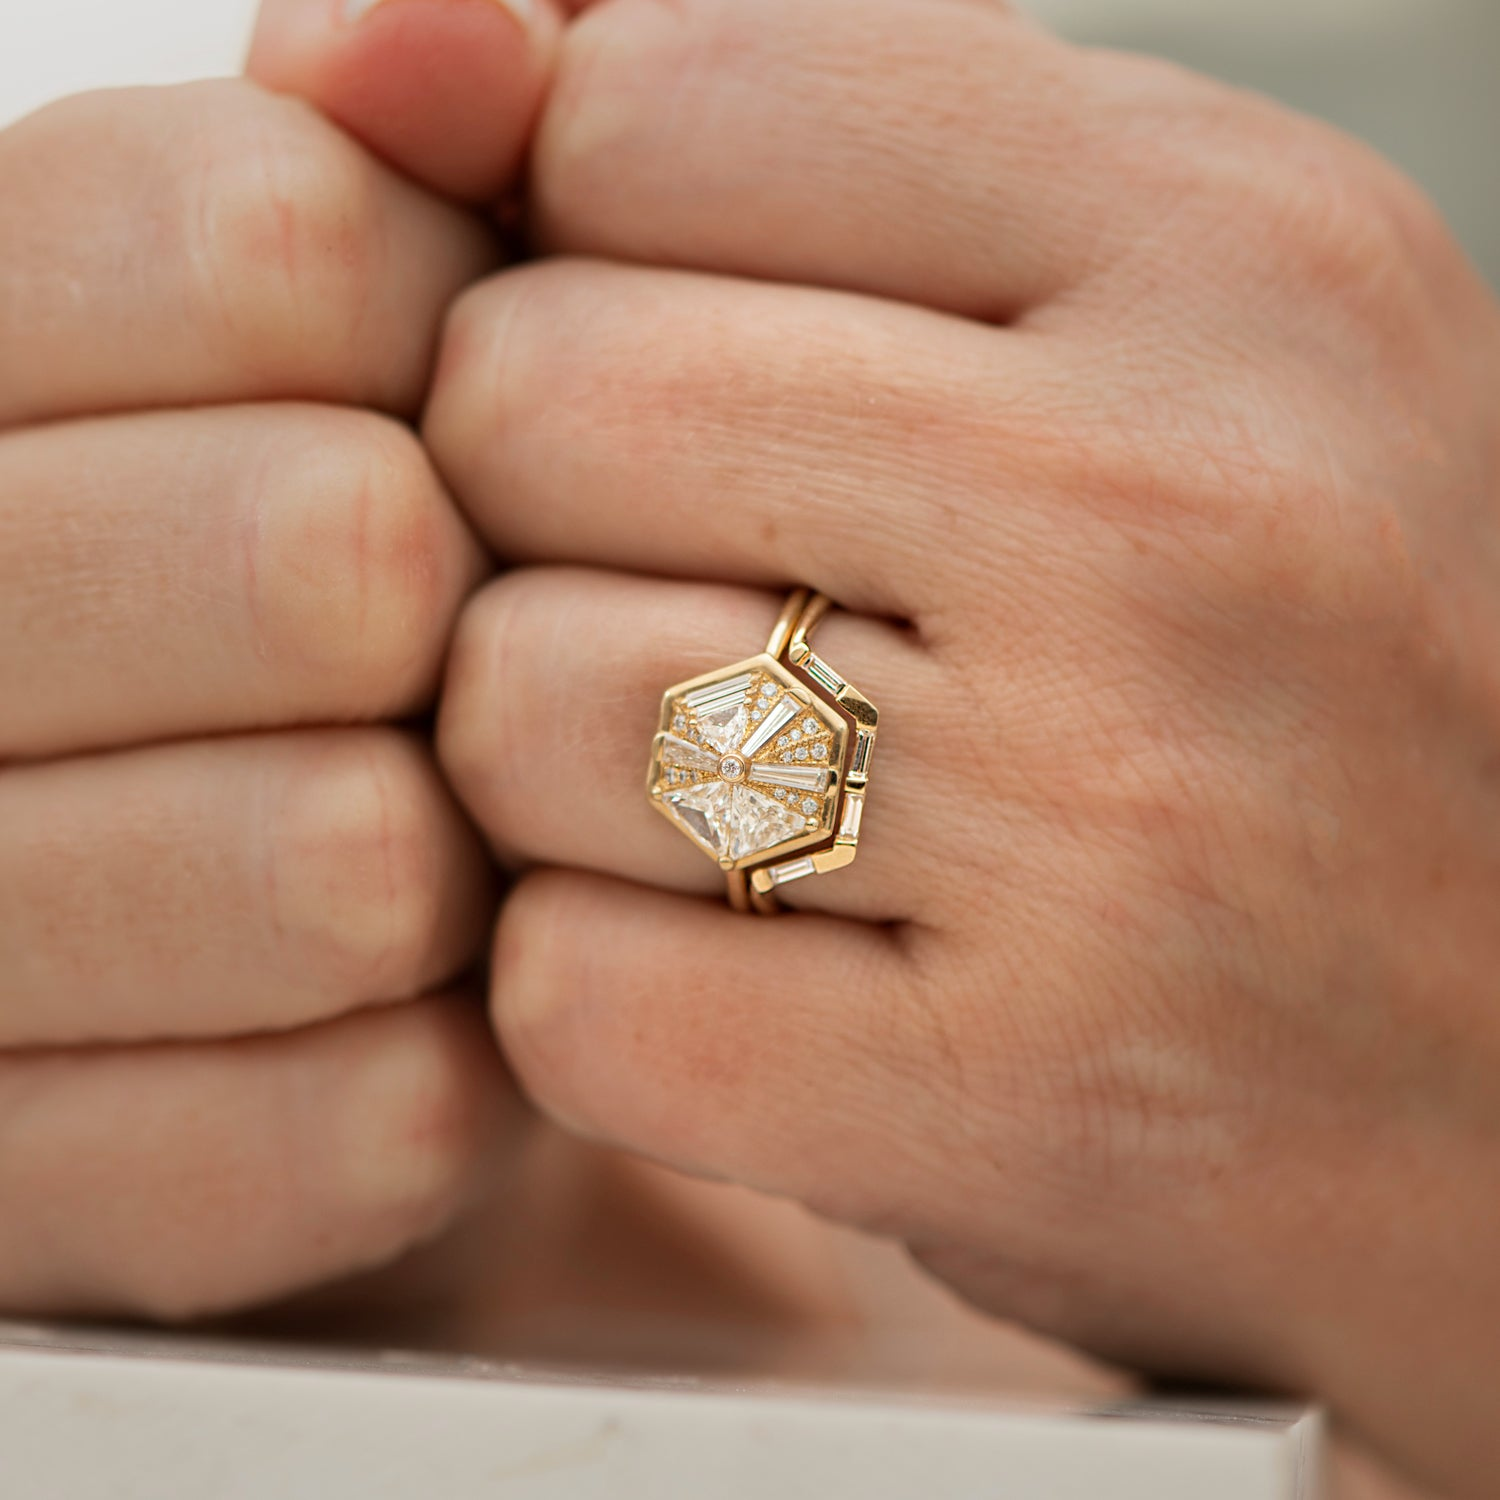 Trapezoid-Nesting-Ring-with-Baguette-Diamonds-closeup-on-hand